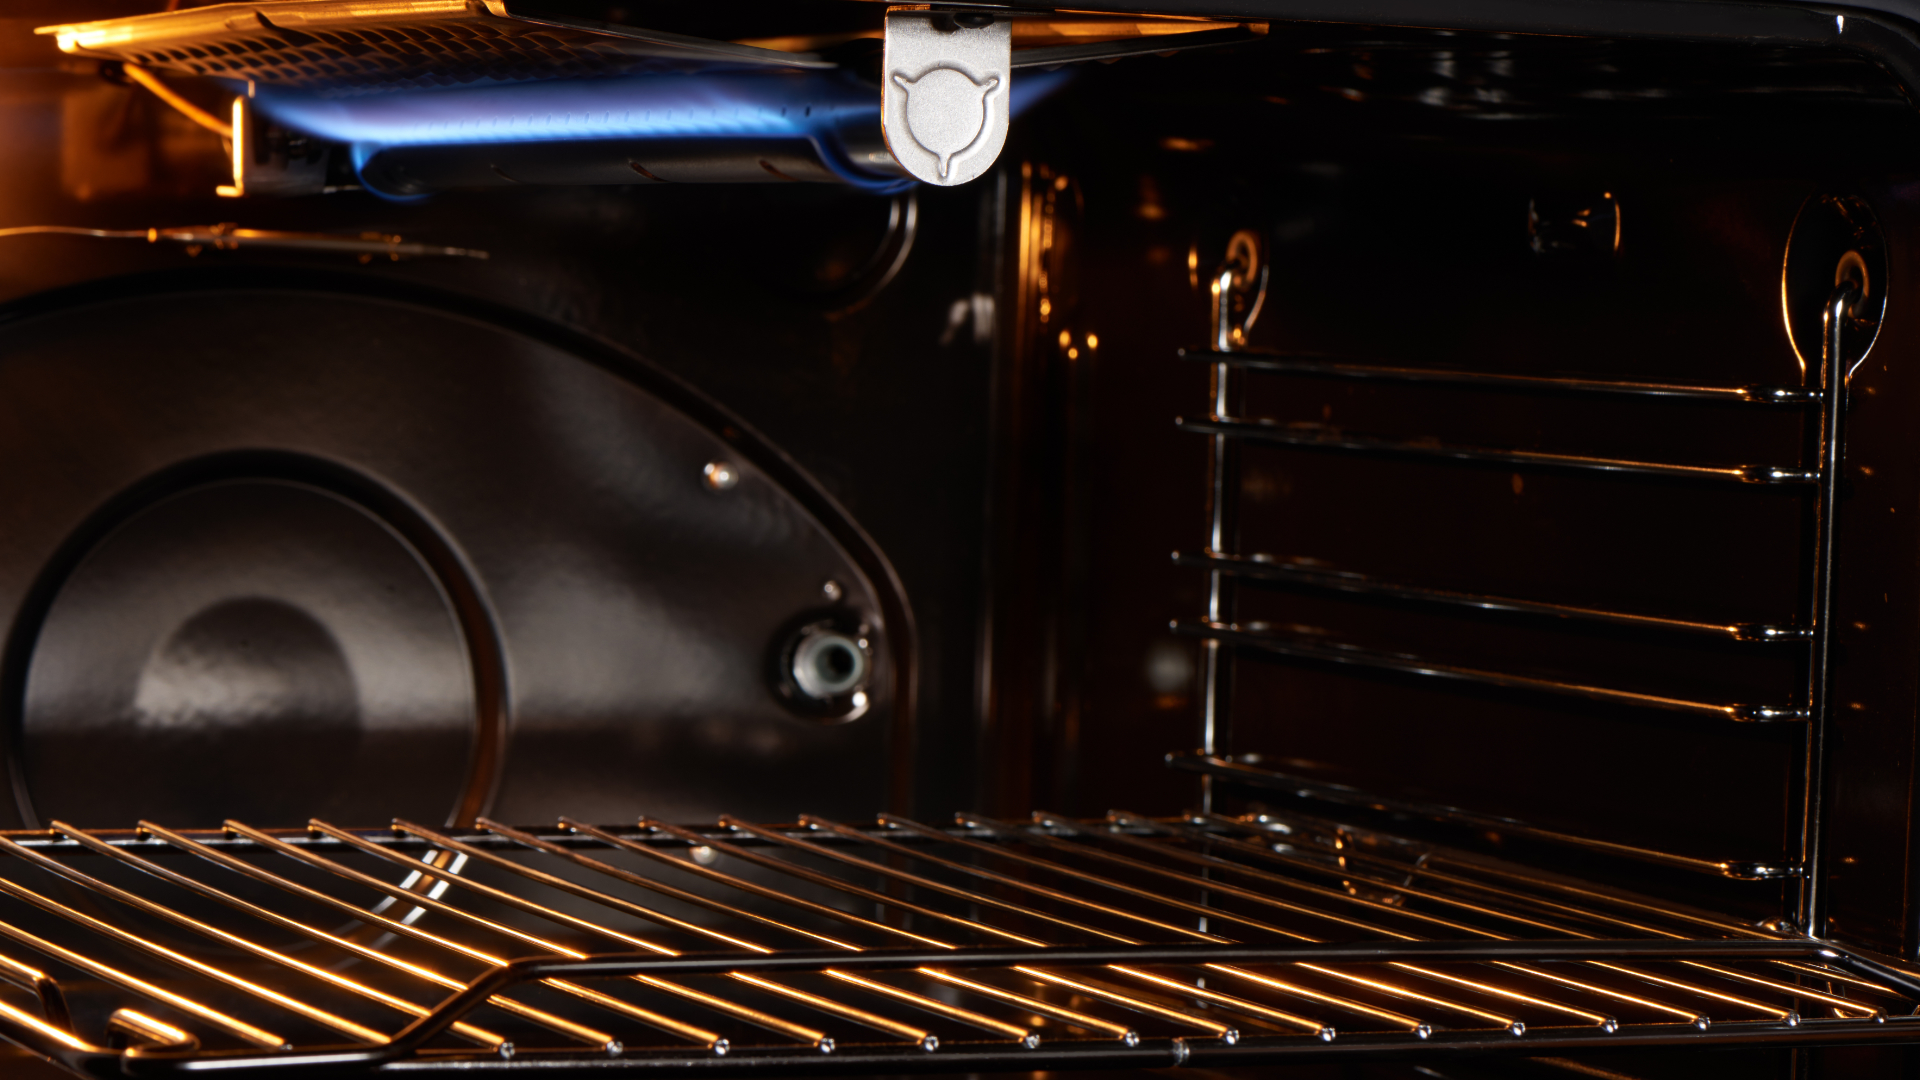 """Featured image for """"Oven Smells Like Gas? Here's How to Fix It"""""""